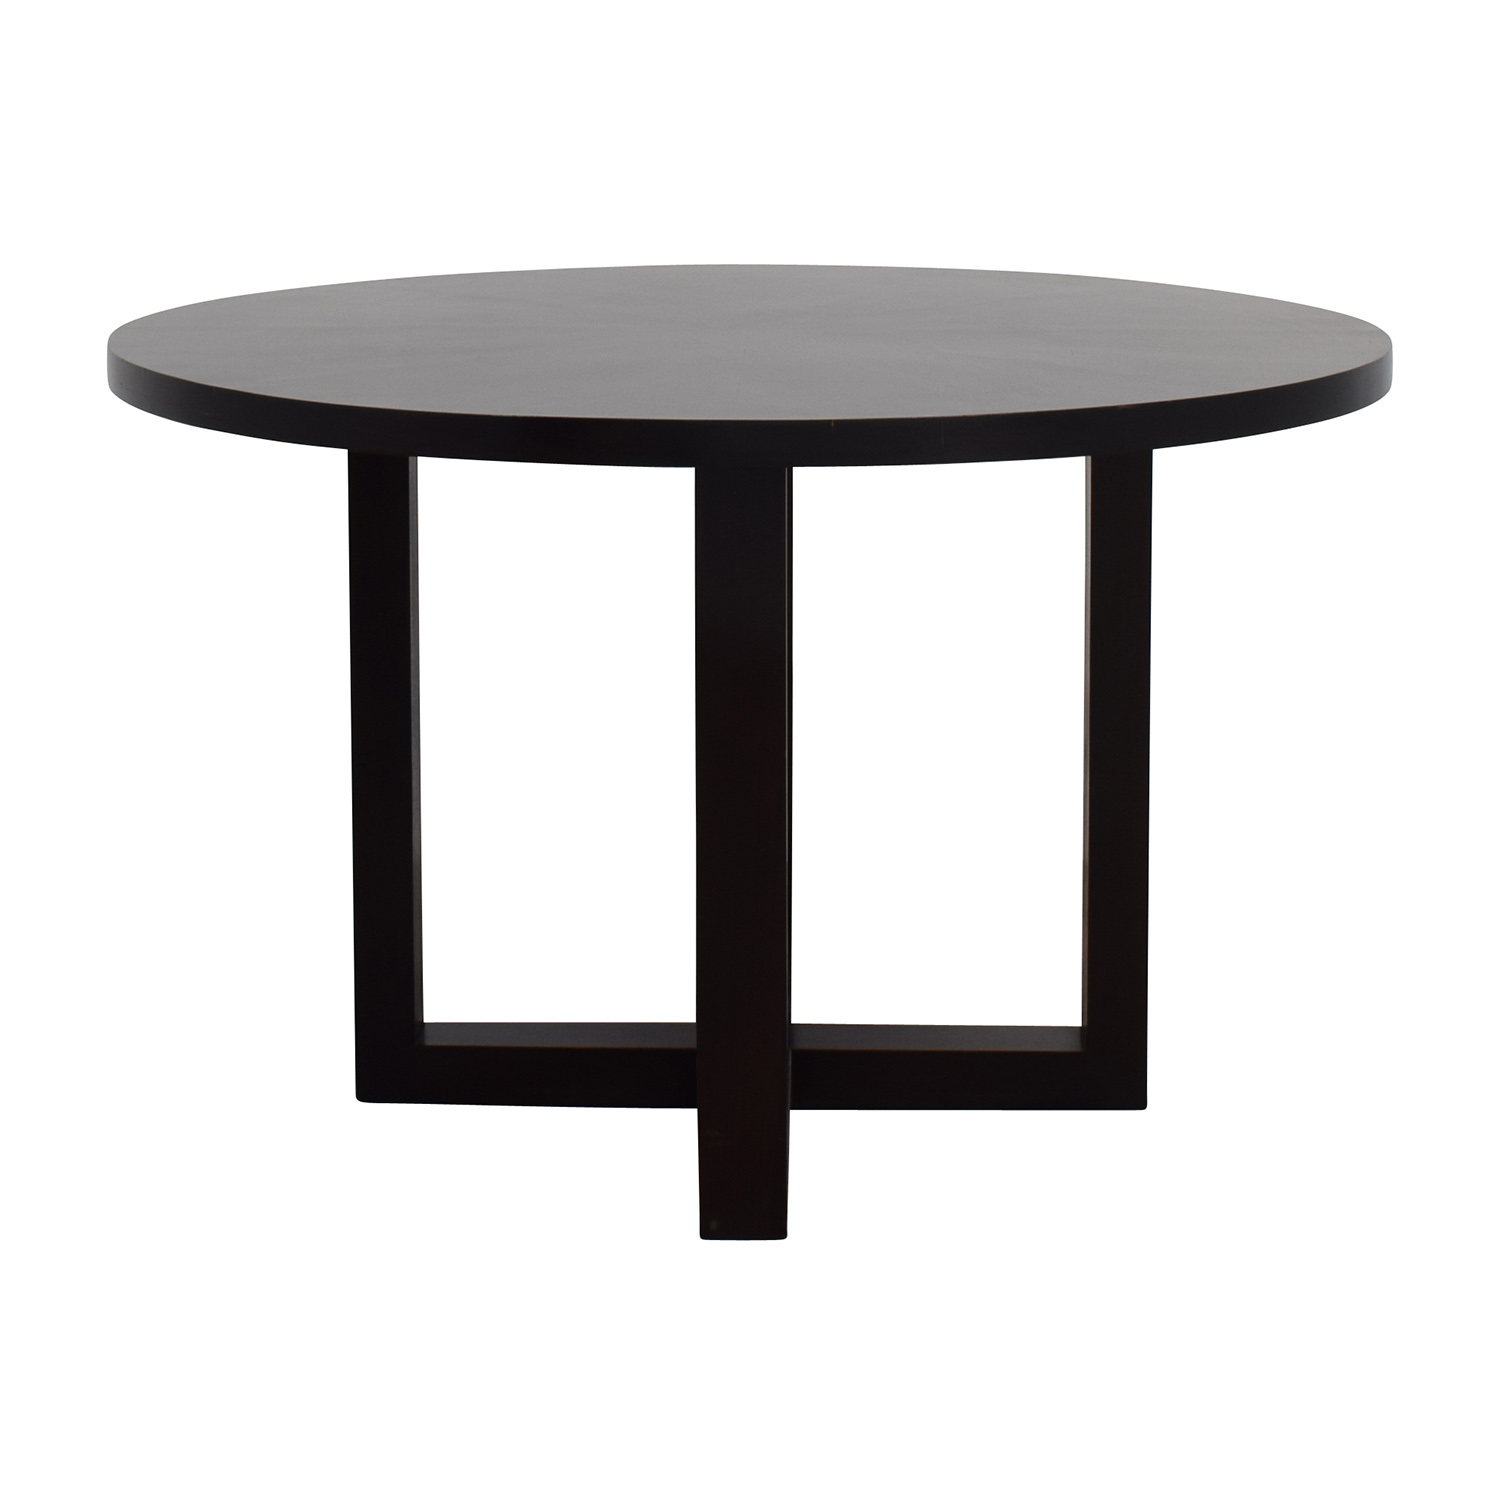 Oly Studio Oly Studio Trevor Dining Table price